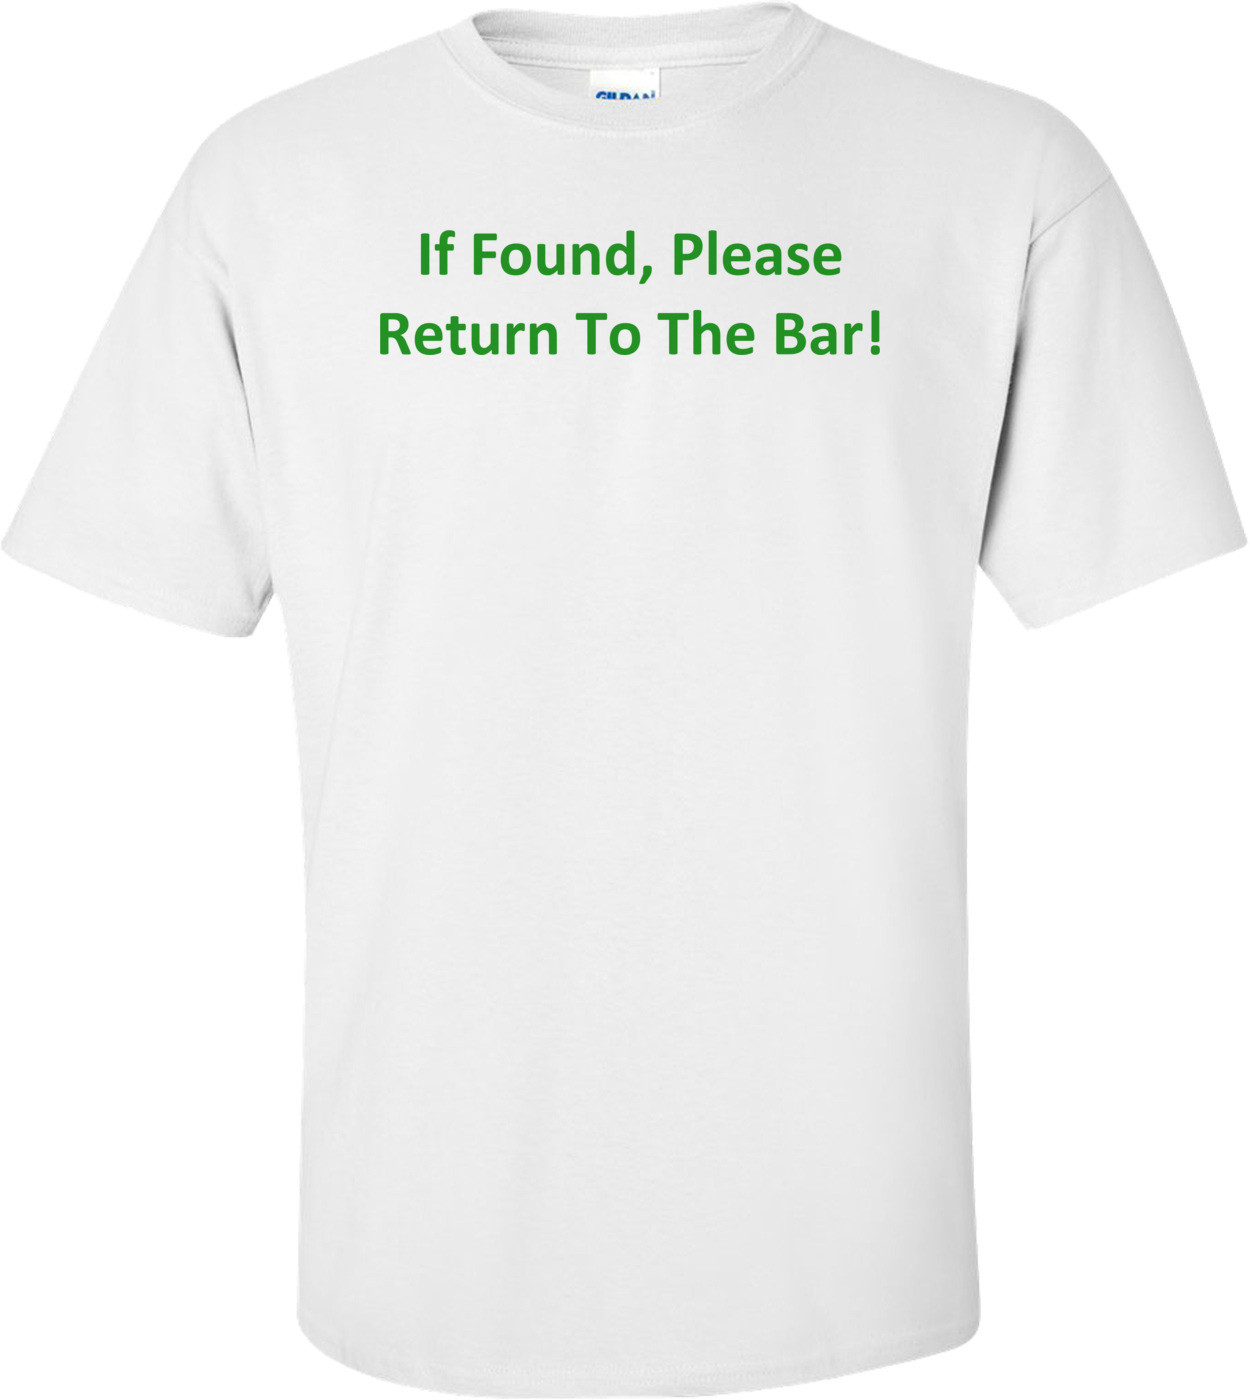 If Found, Please Return To The Bar! Shirt